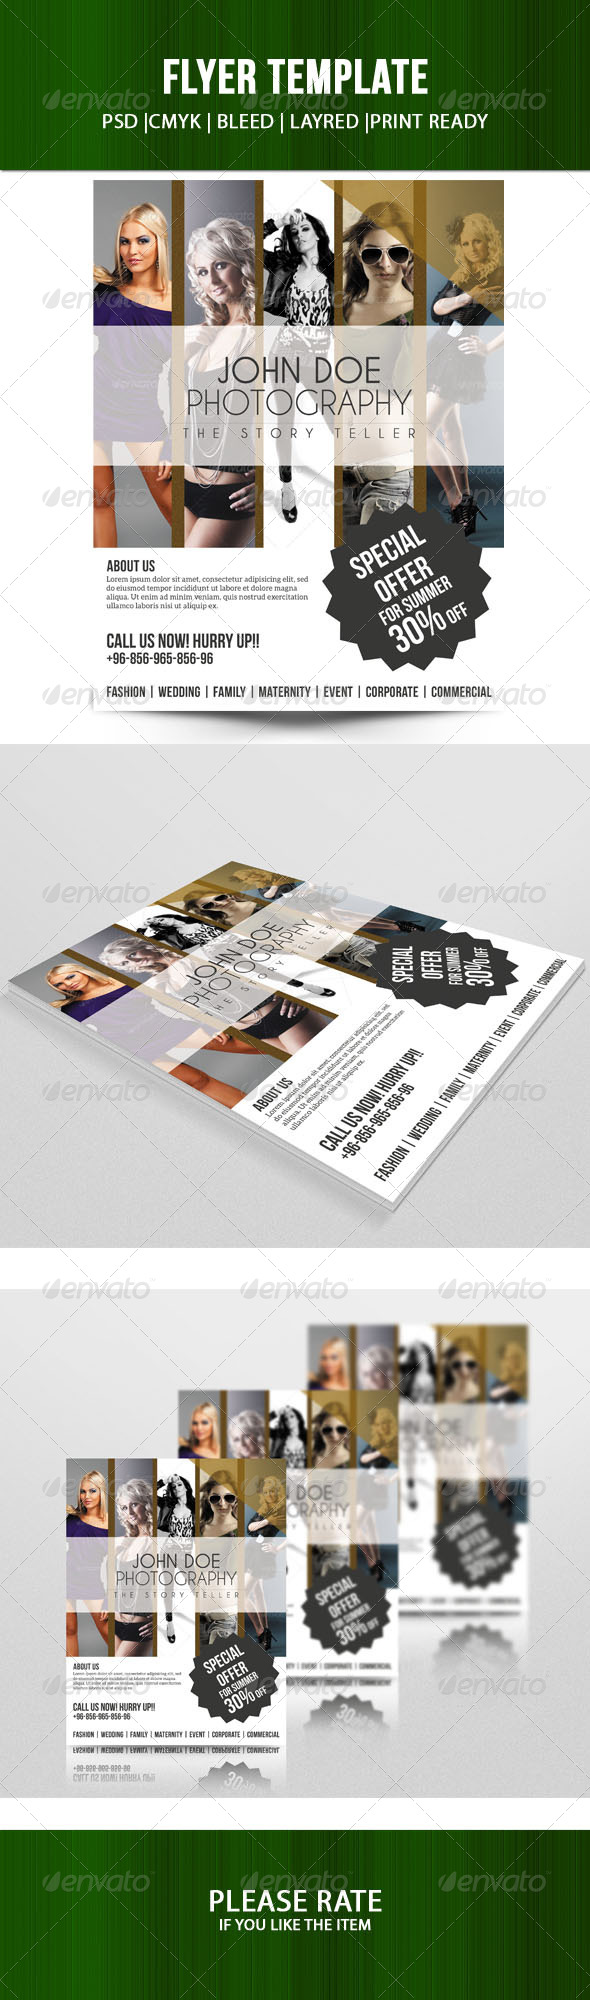 Sale Offer Flyer Template - Corporate Flyers